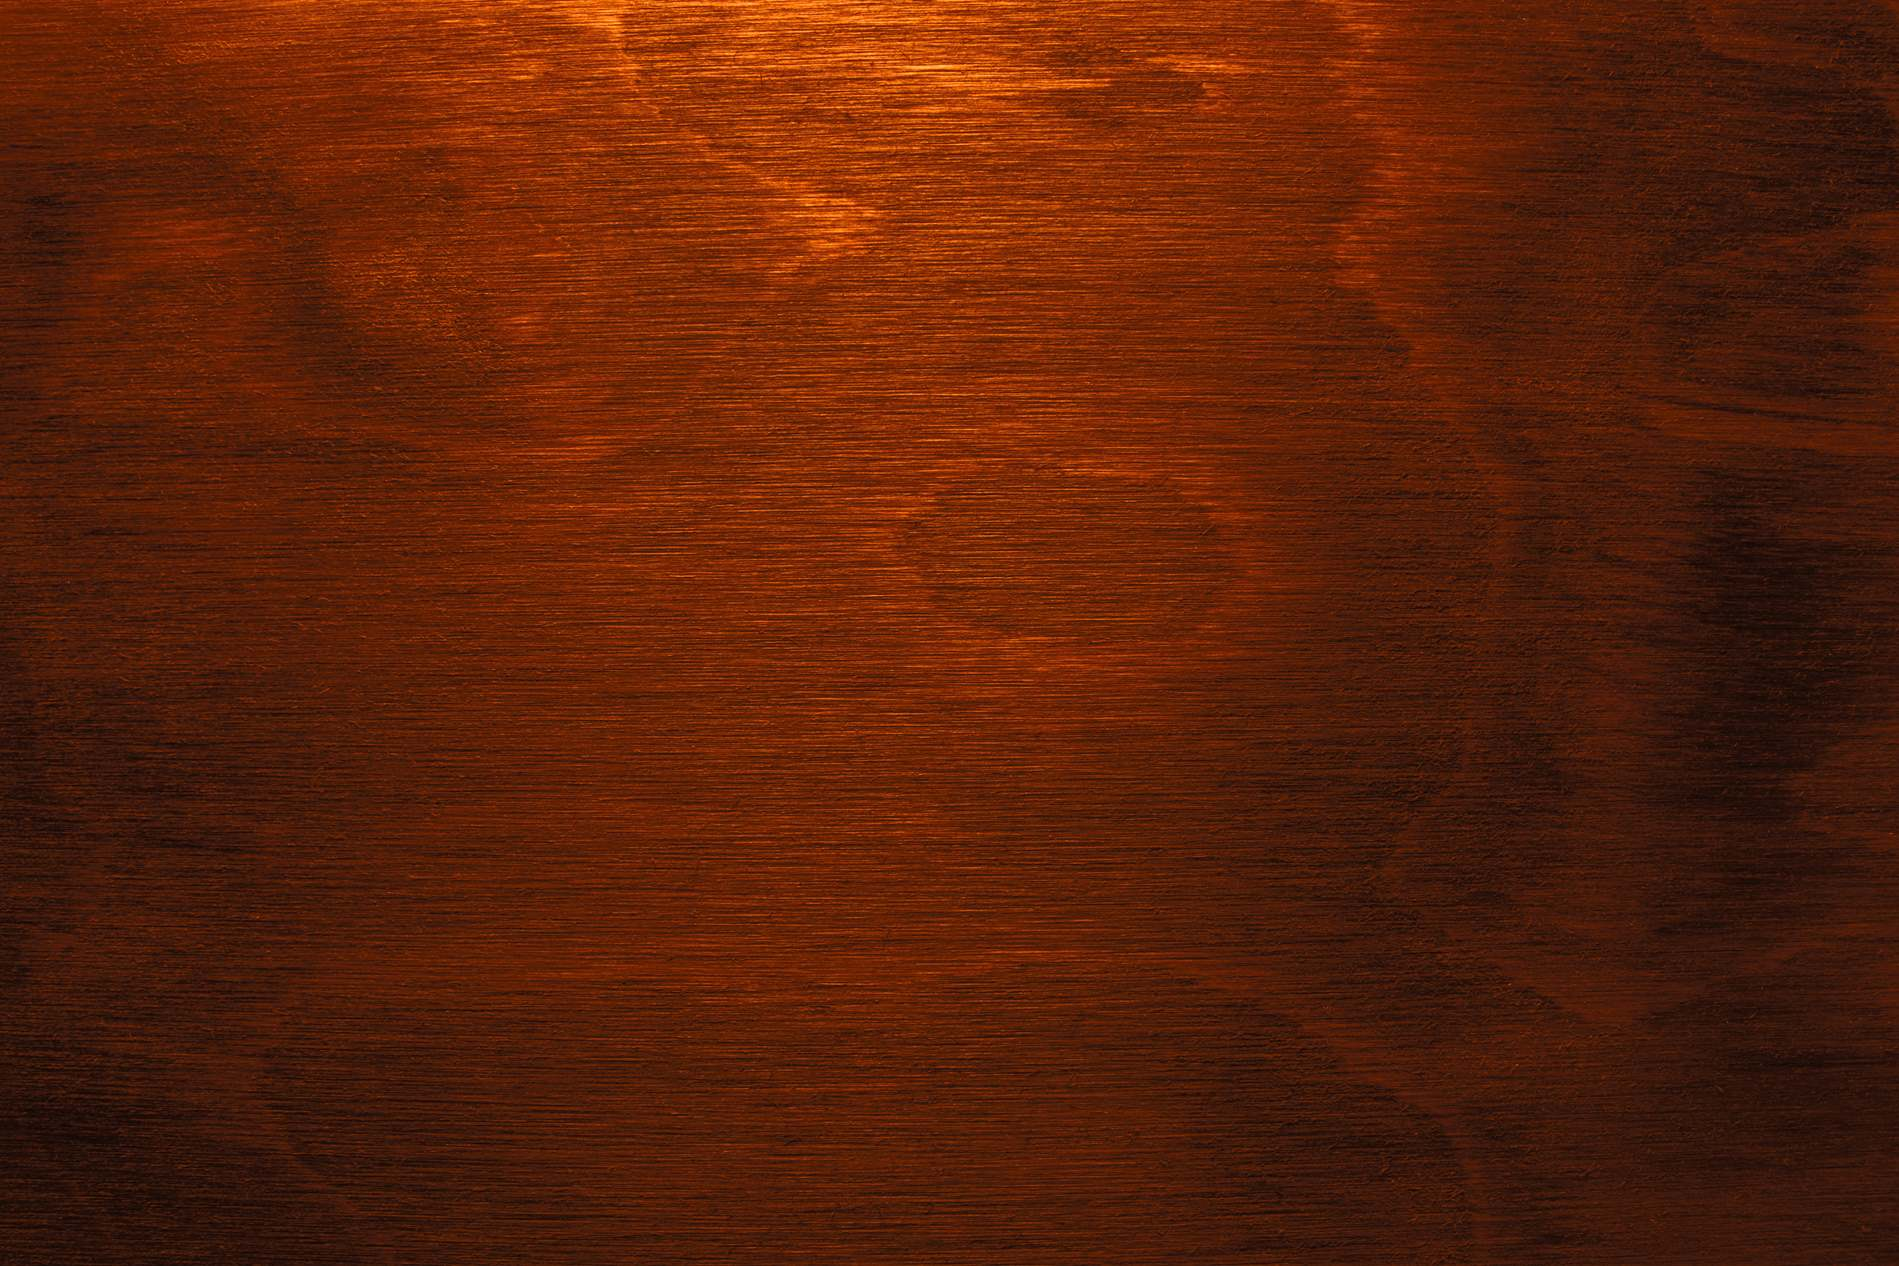 Dark Mahogany Wood ~ Dark red wood texture background photohdx